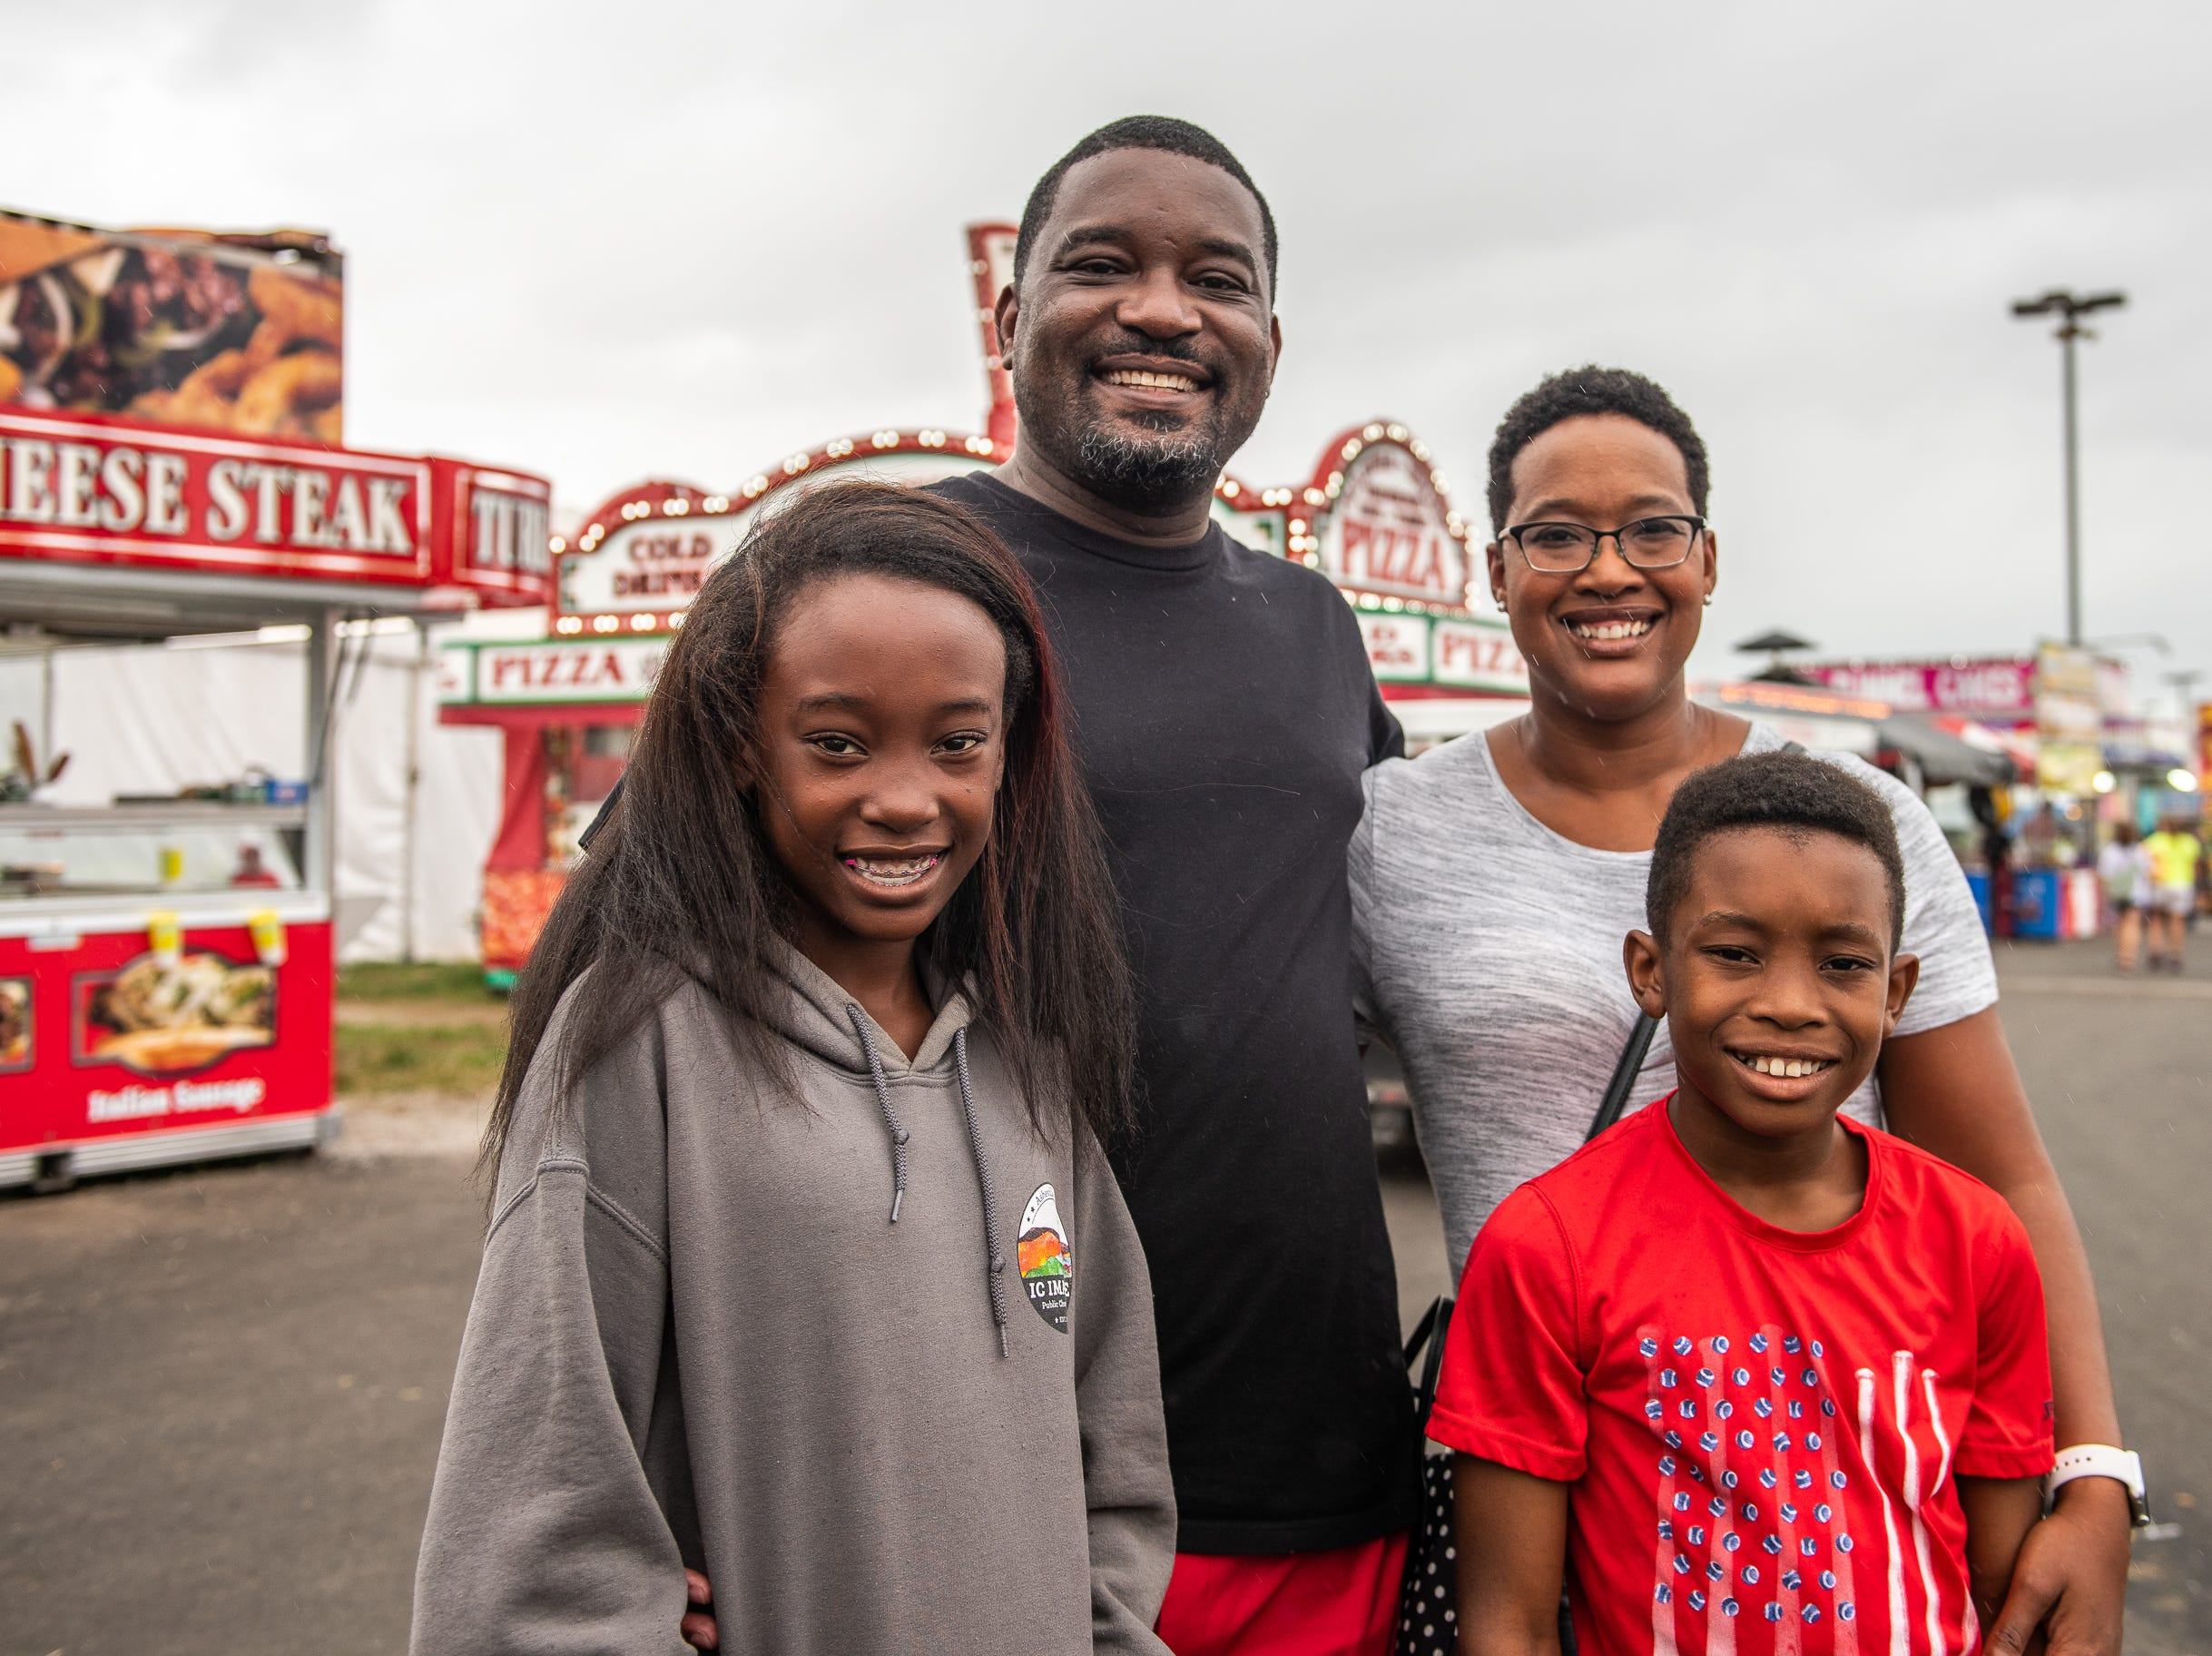 From rides to games to fair food, the crowds had a fun final day at the N.C. Mountain State Fair on Sept. 15, 2018.